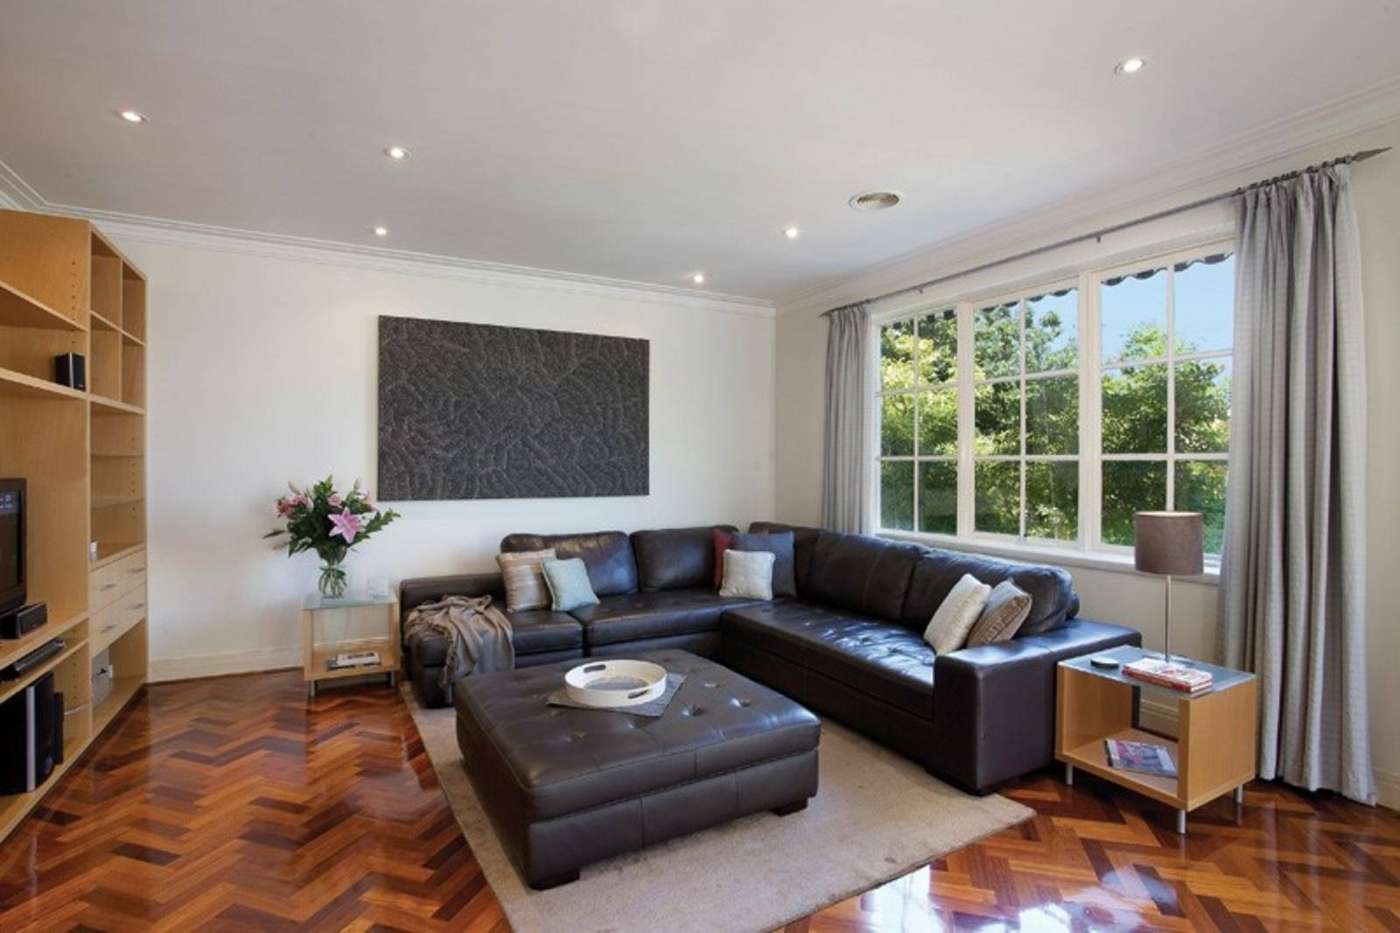 Main view of Homely apartment listing, 10/26 Springfield Avenue, Toorak, VIC 3142